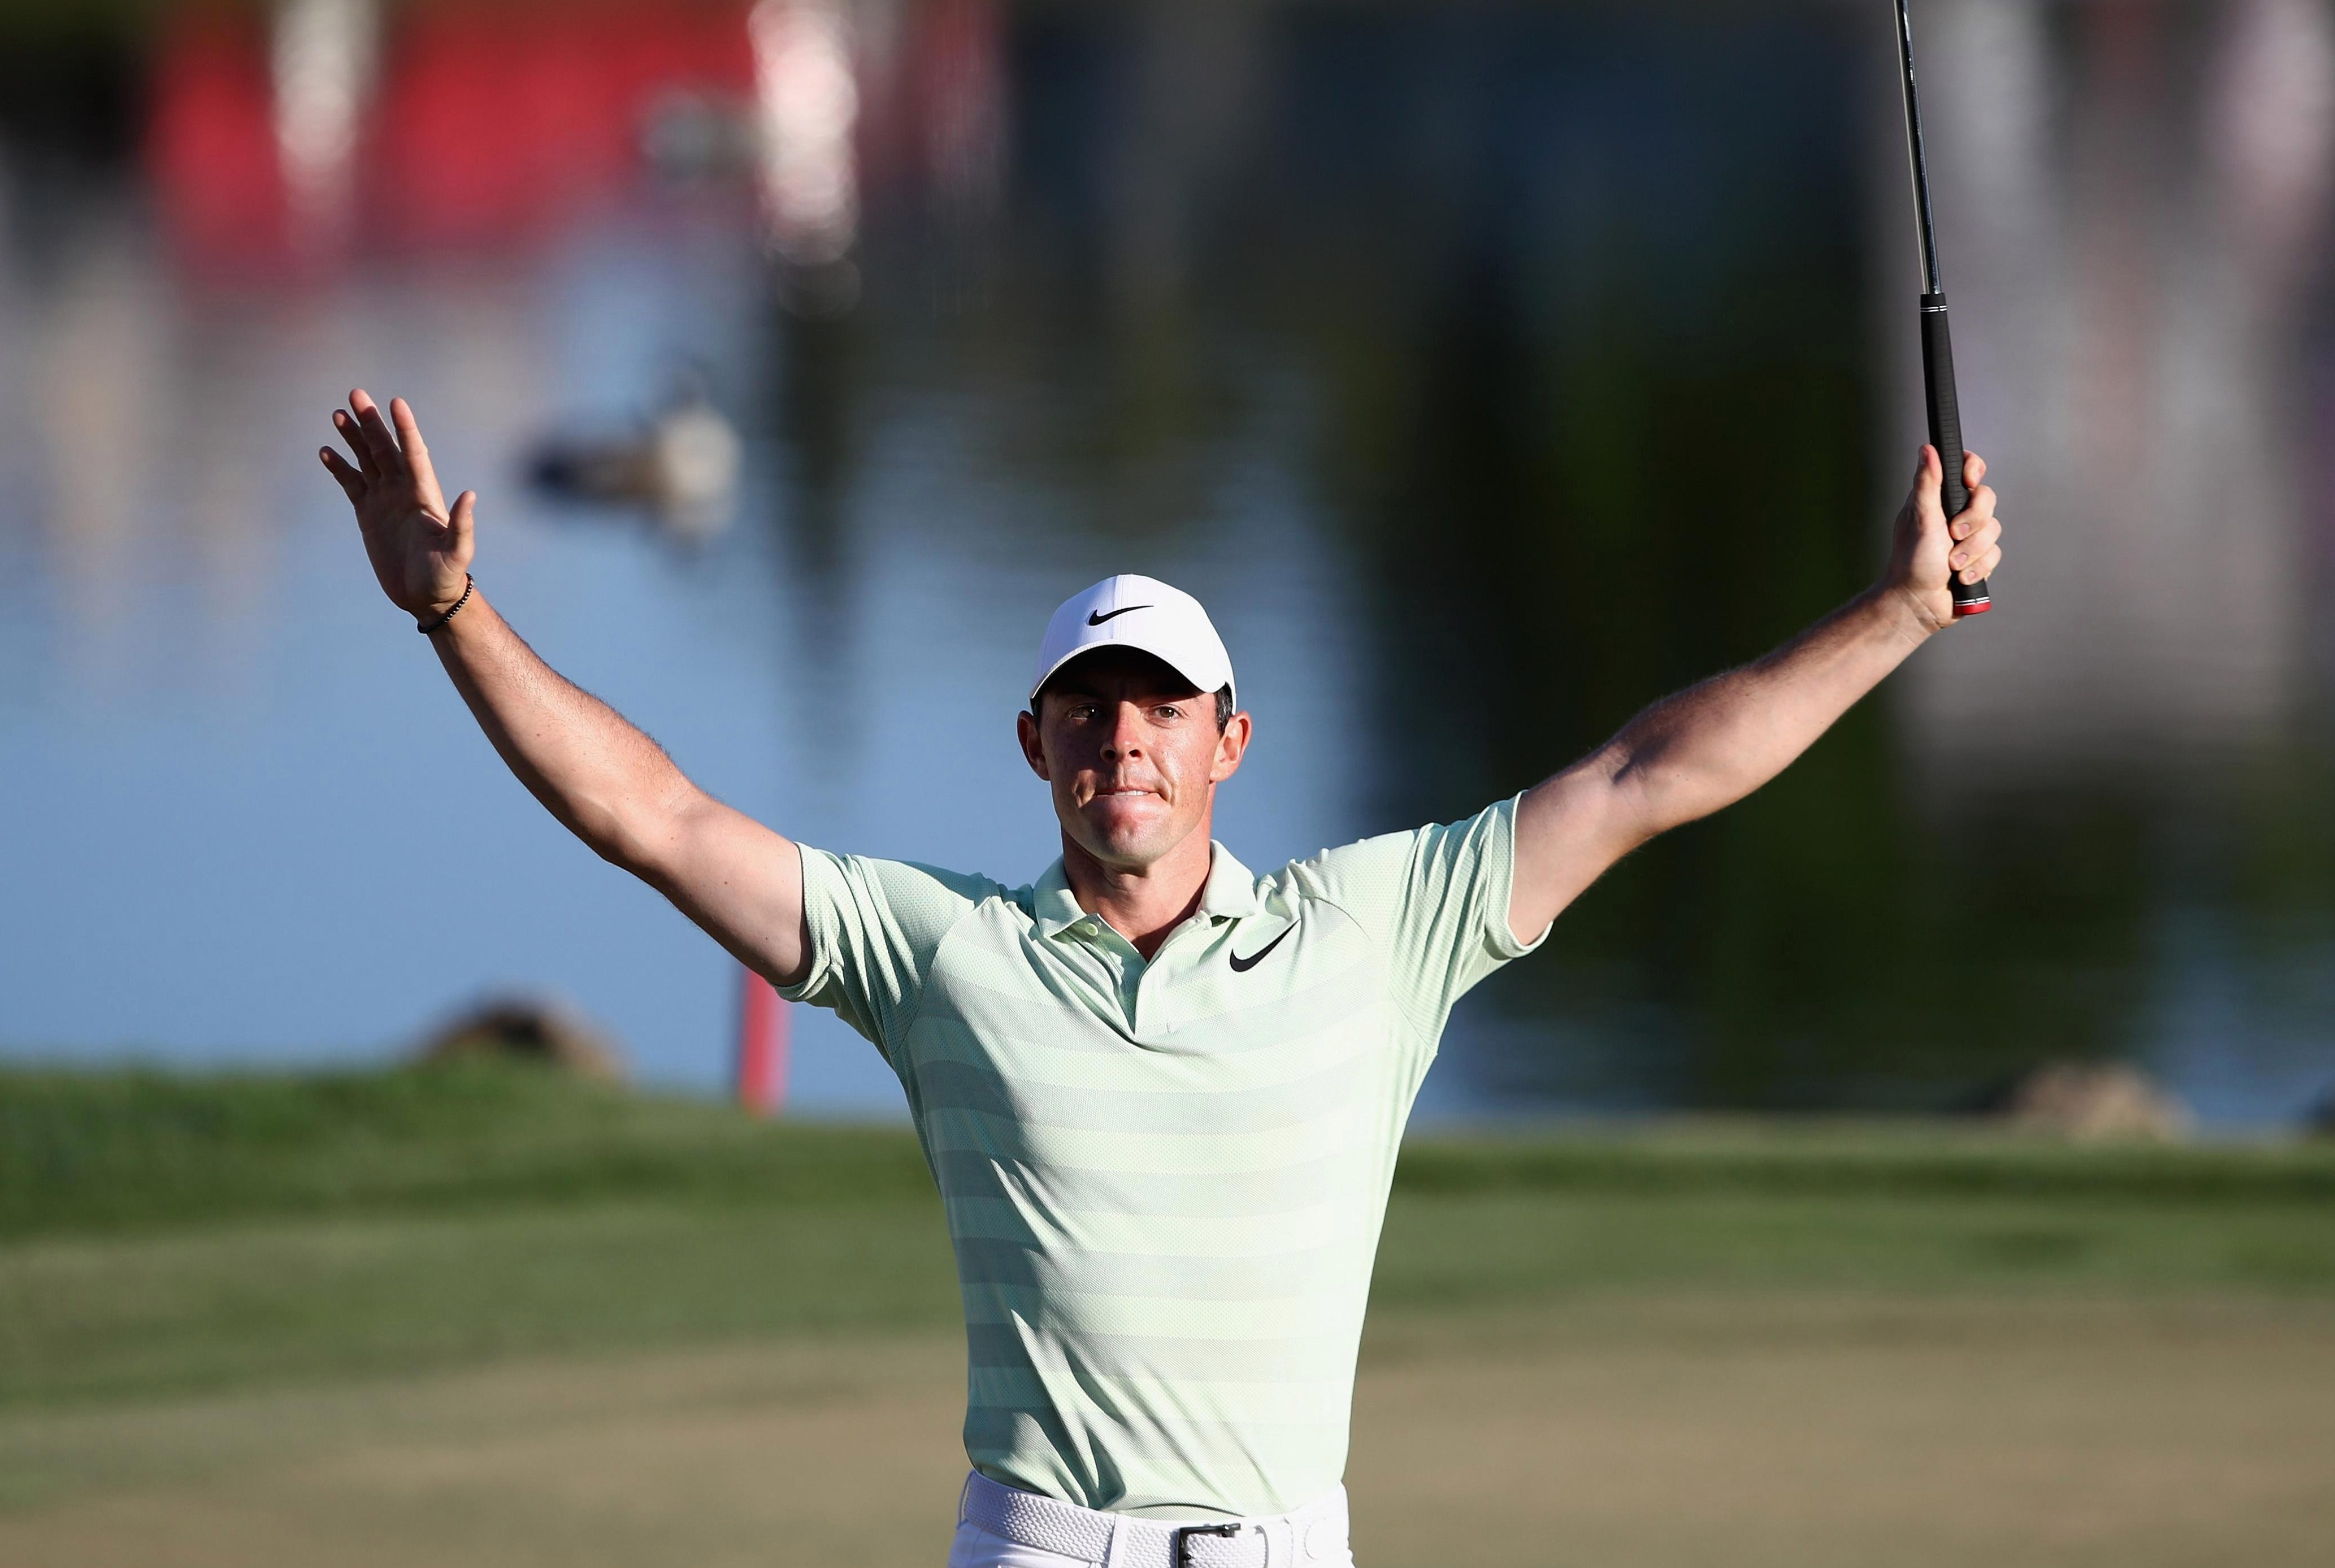 McIlroy reacts after putting a huge 25 foot putt on the 18th hole